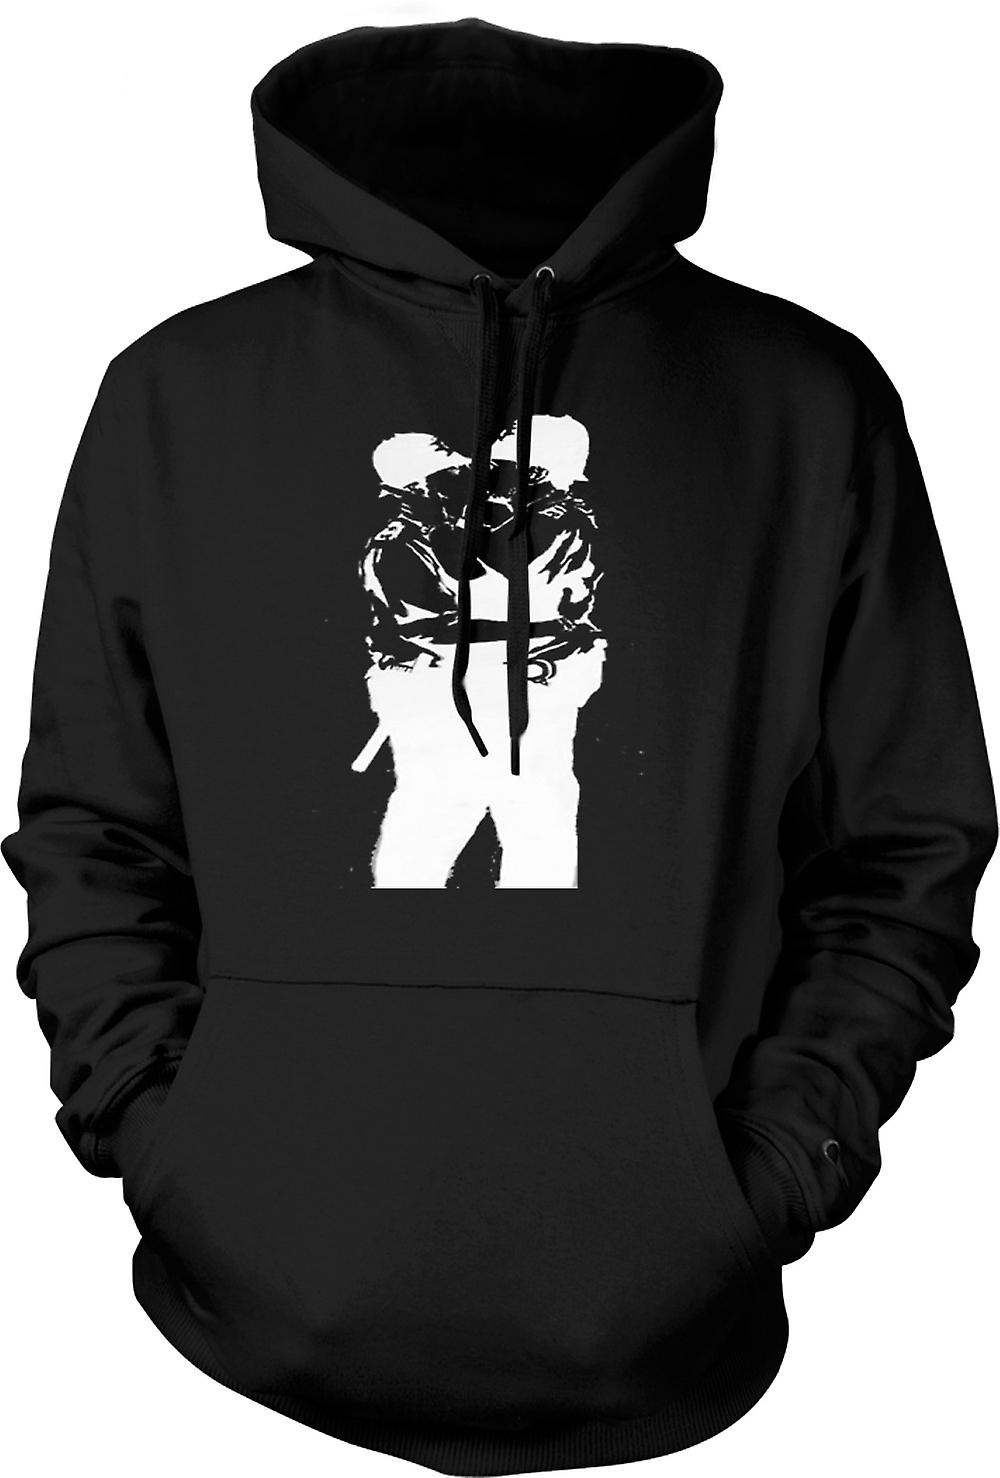 Mens Hoodie - Banksy Graffiti Art - Gay Police